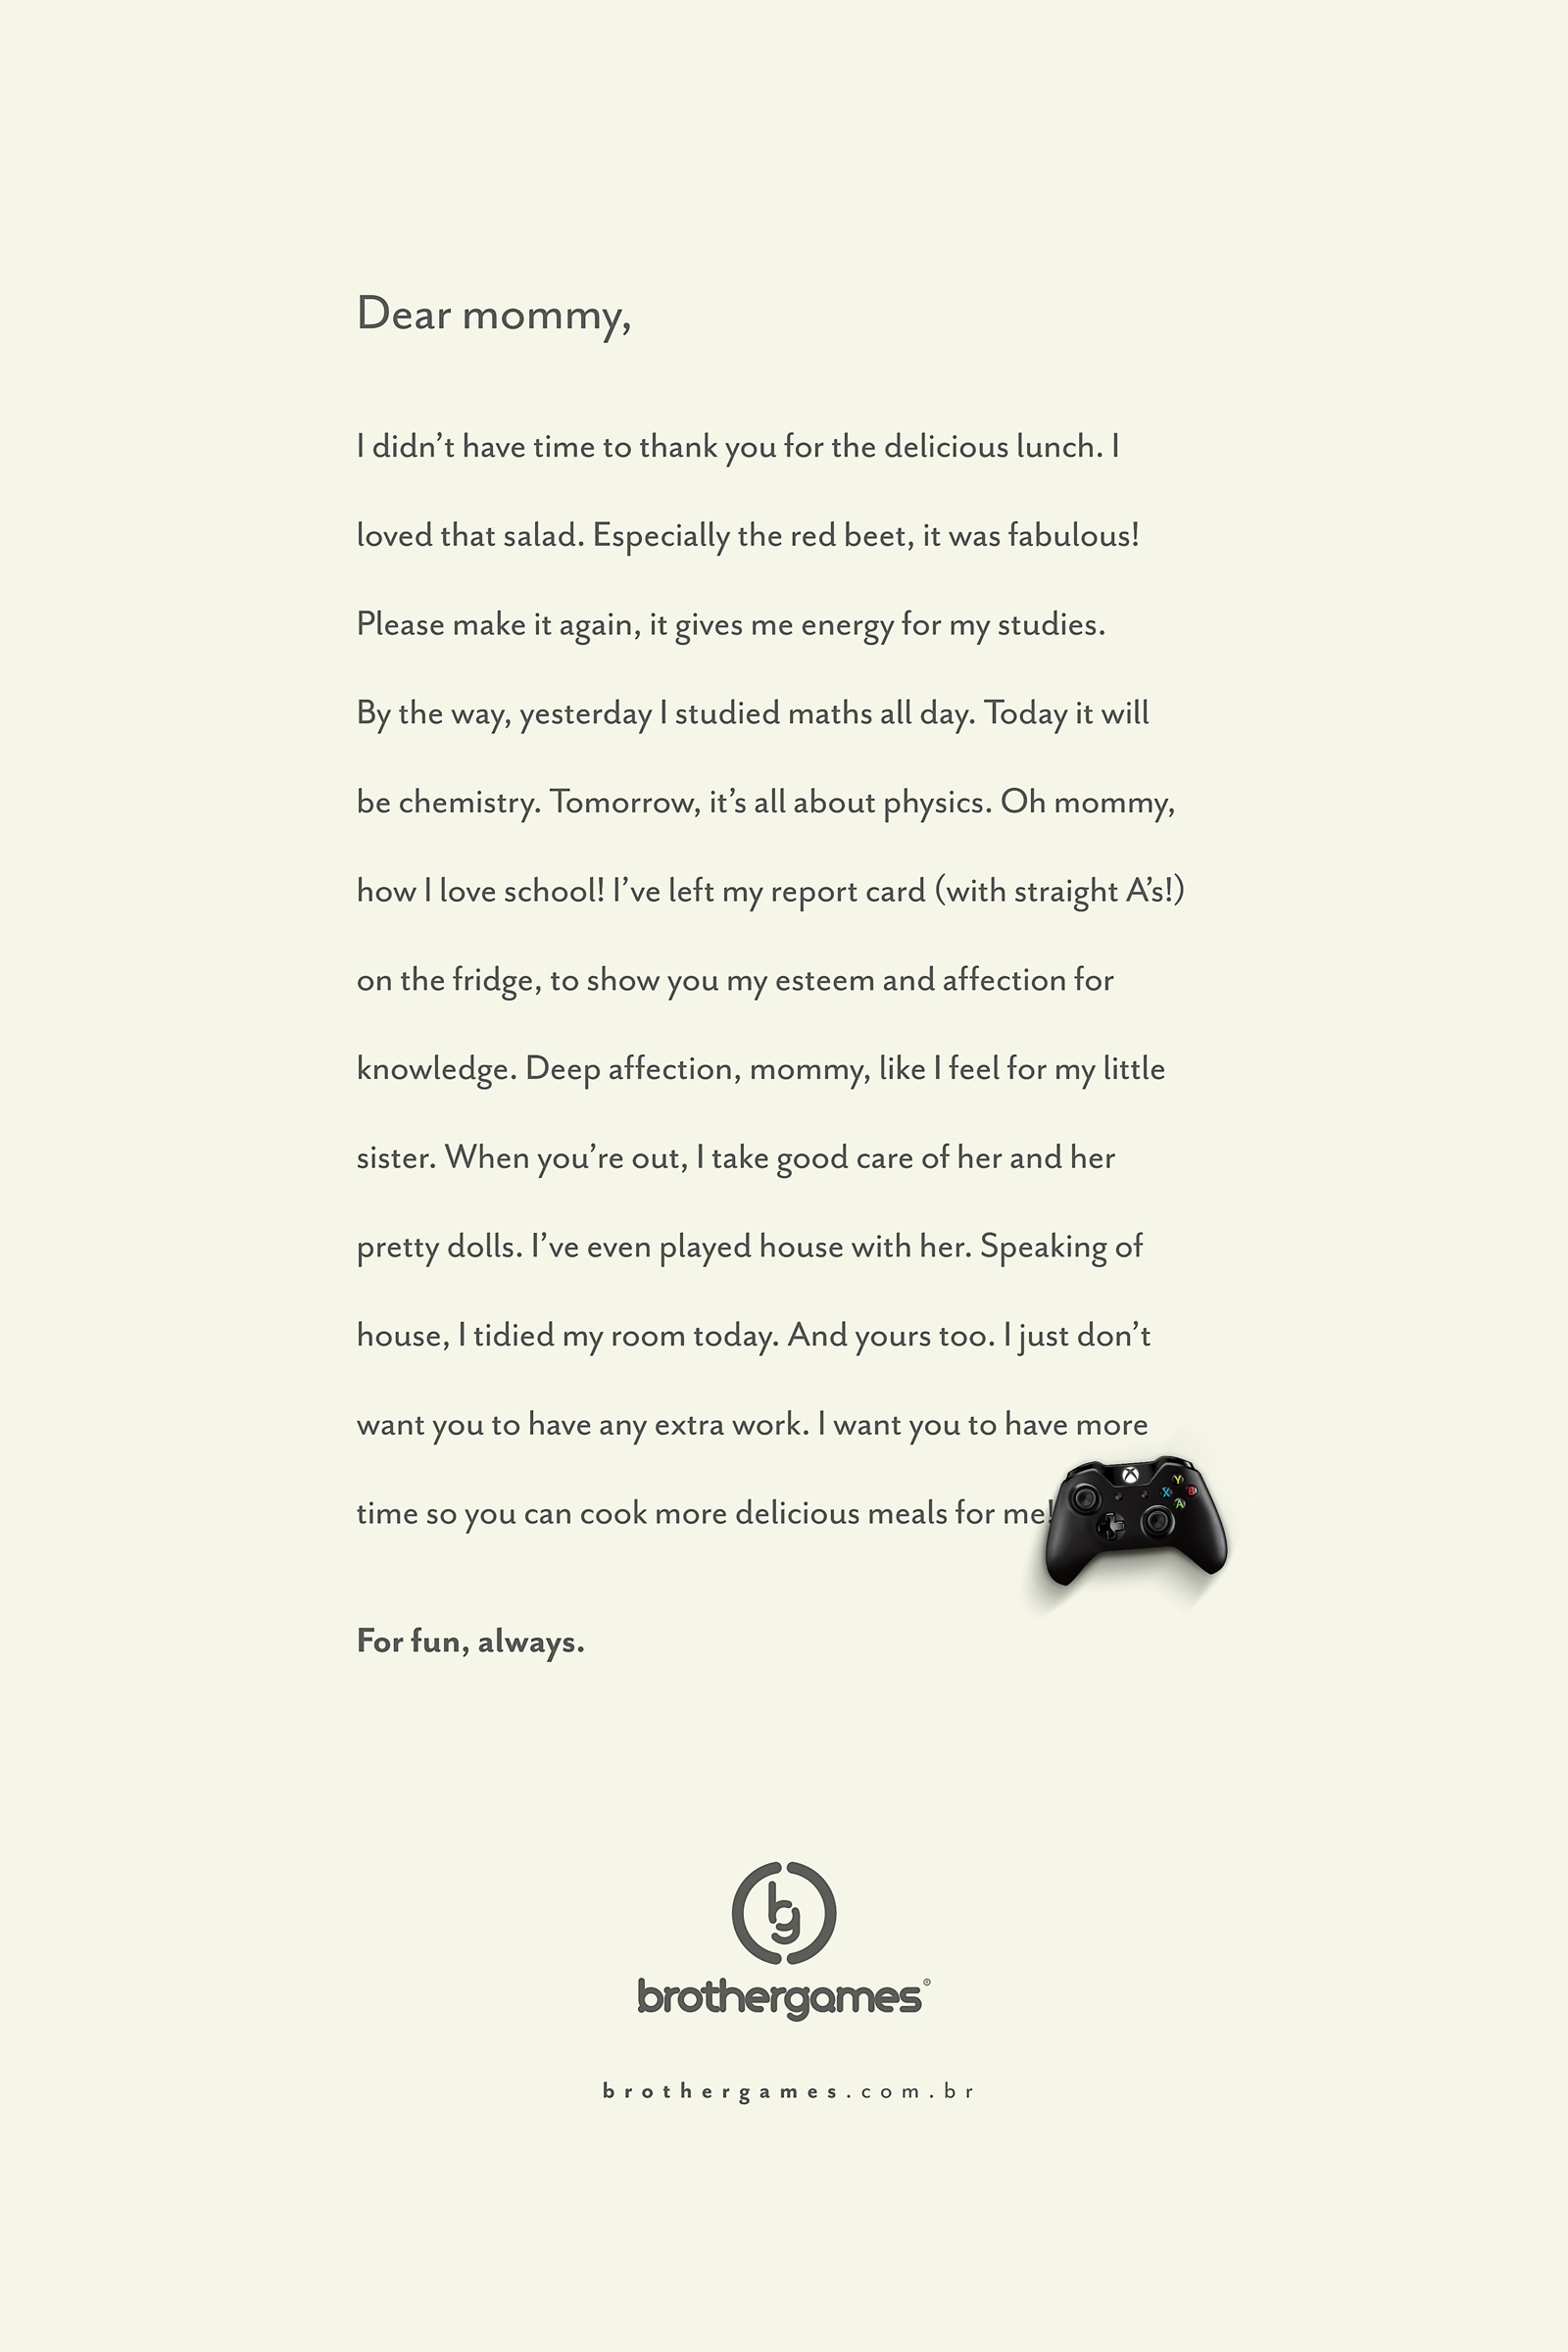 Brother Games Print Advert By Jbis: Mom | Ads of the World™